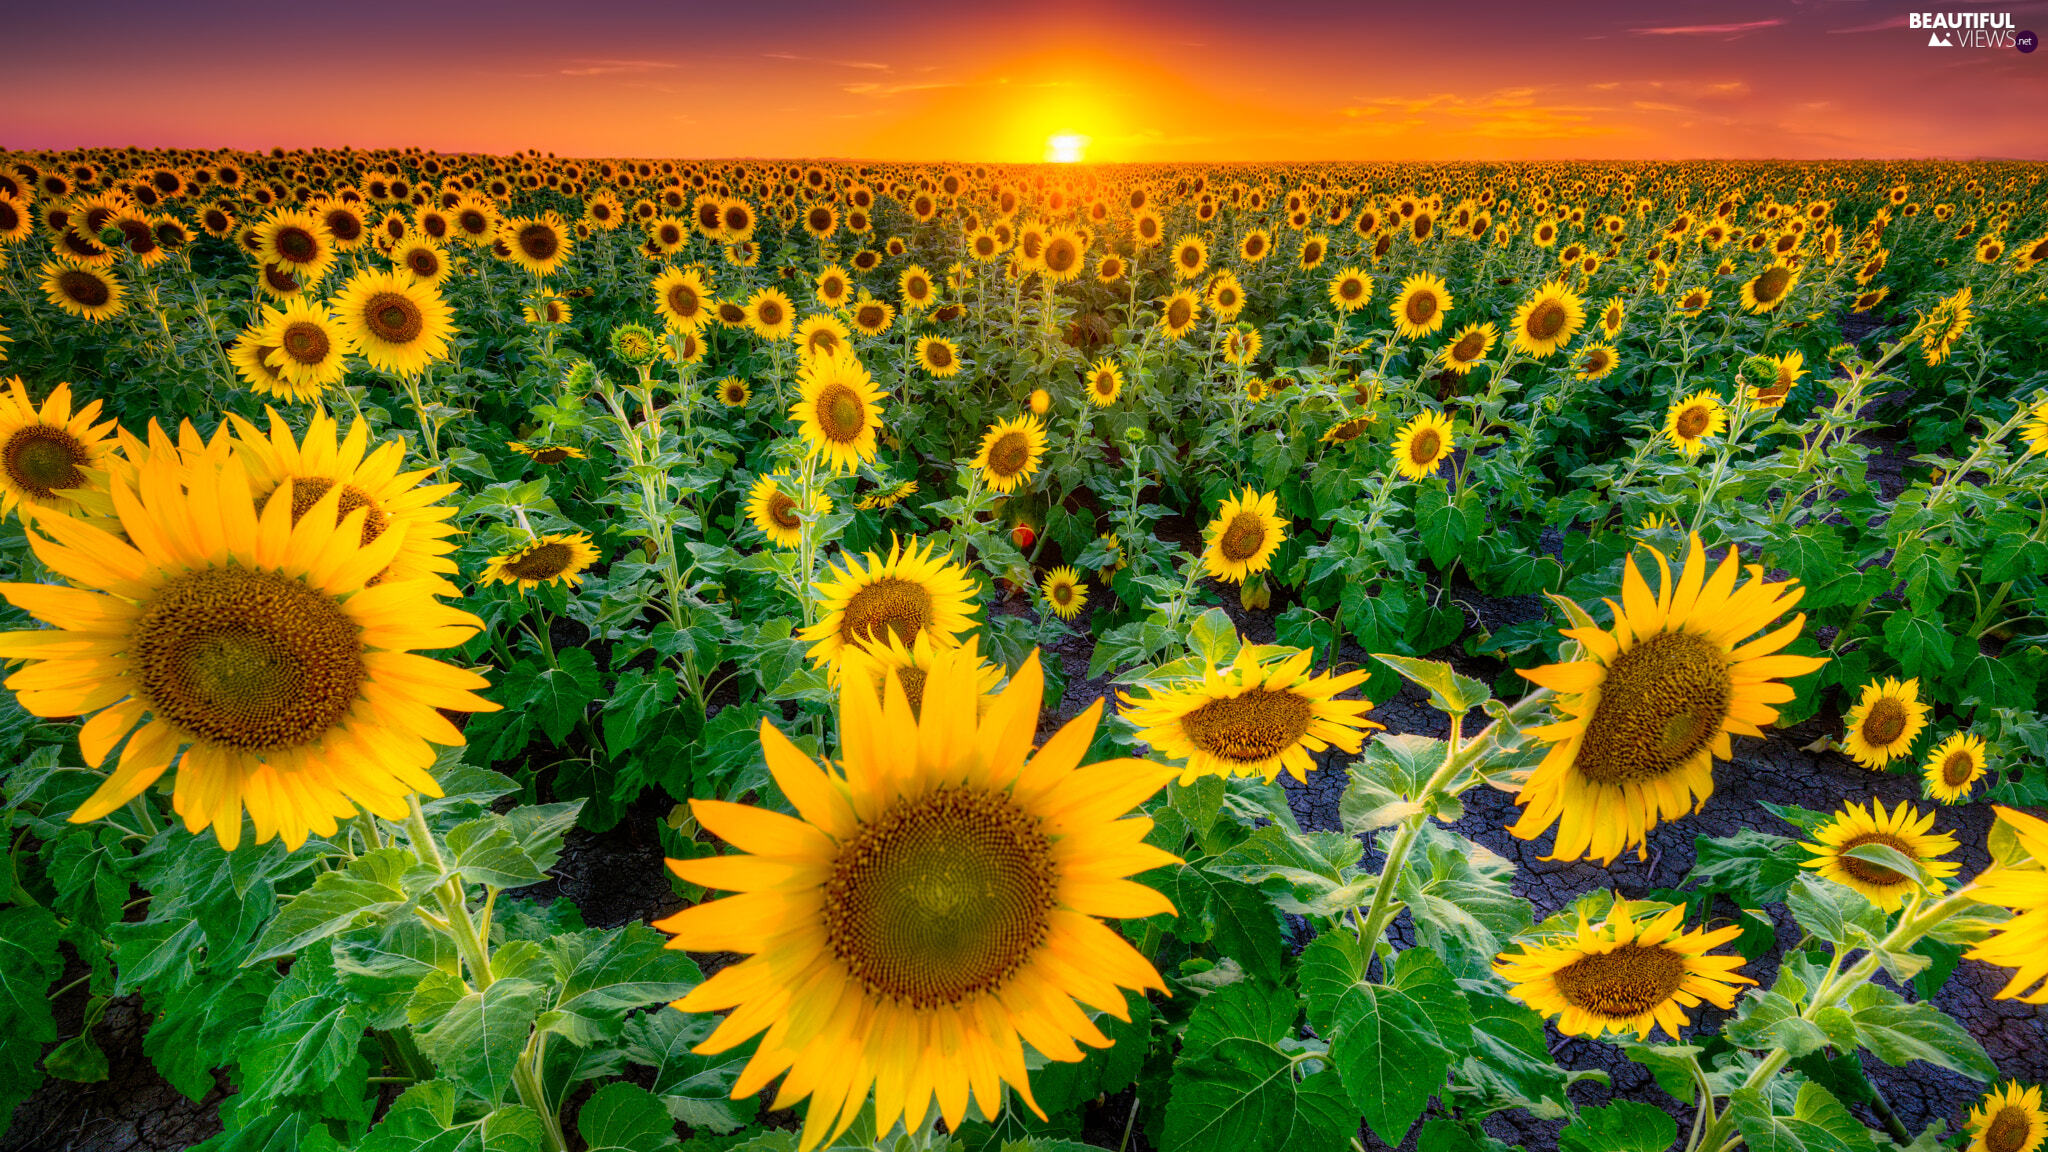 Field, Sky, Great Sunsets, Nice sunflowers